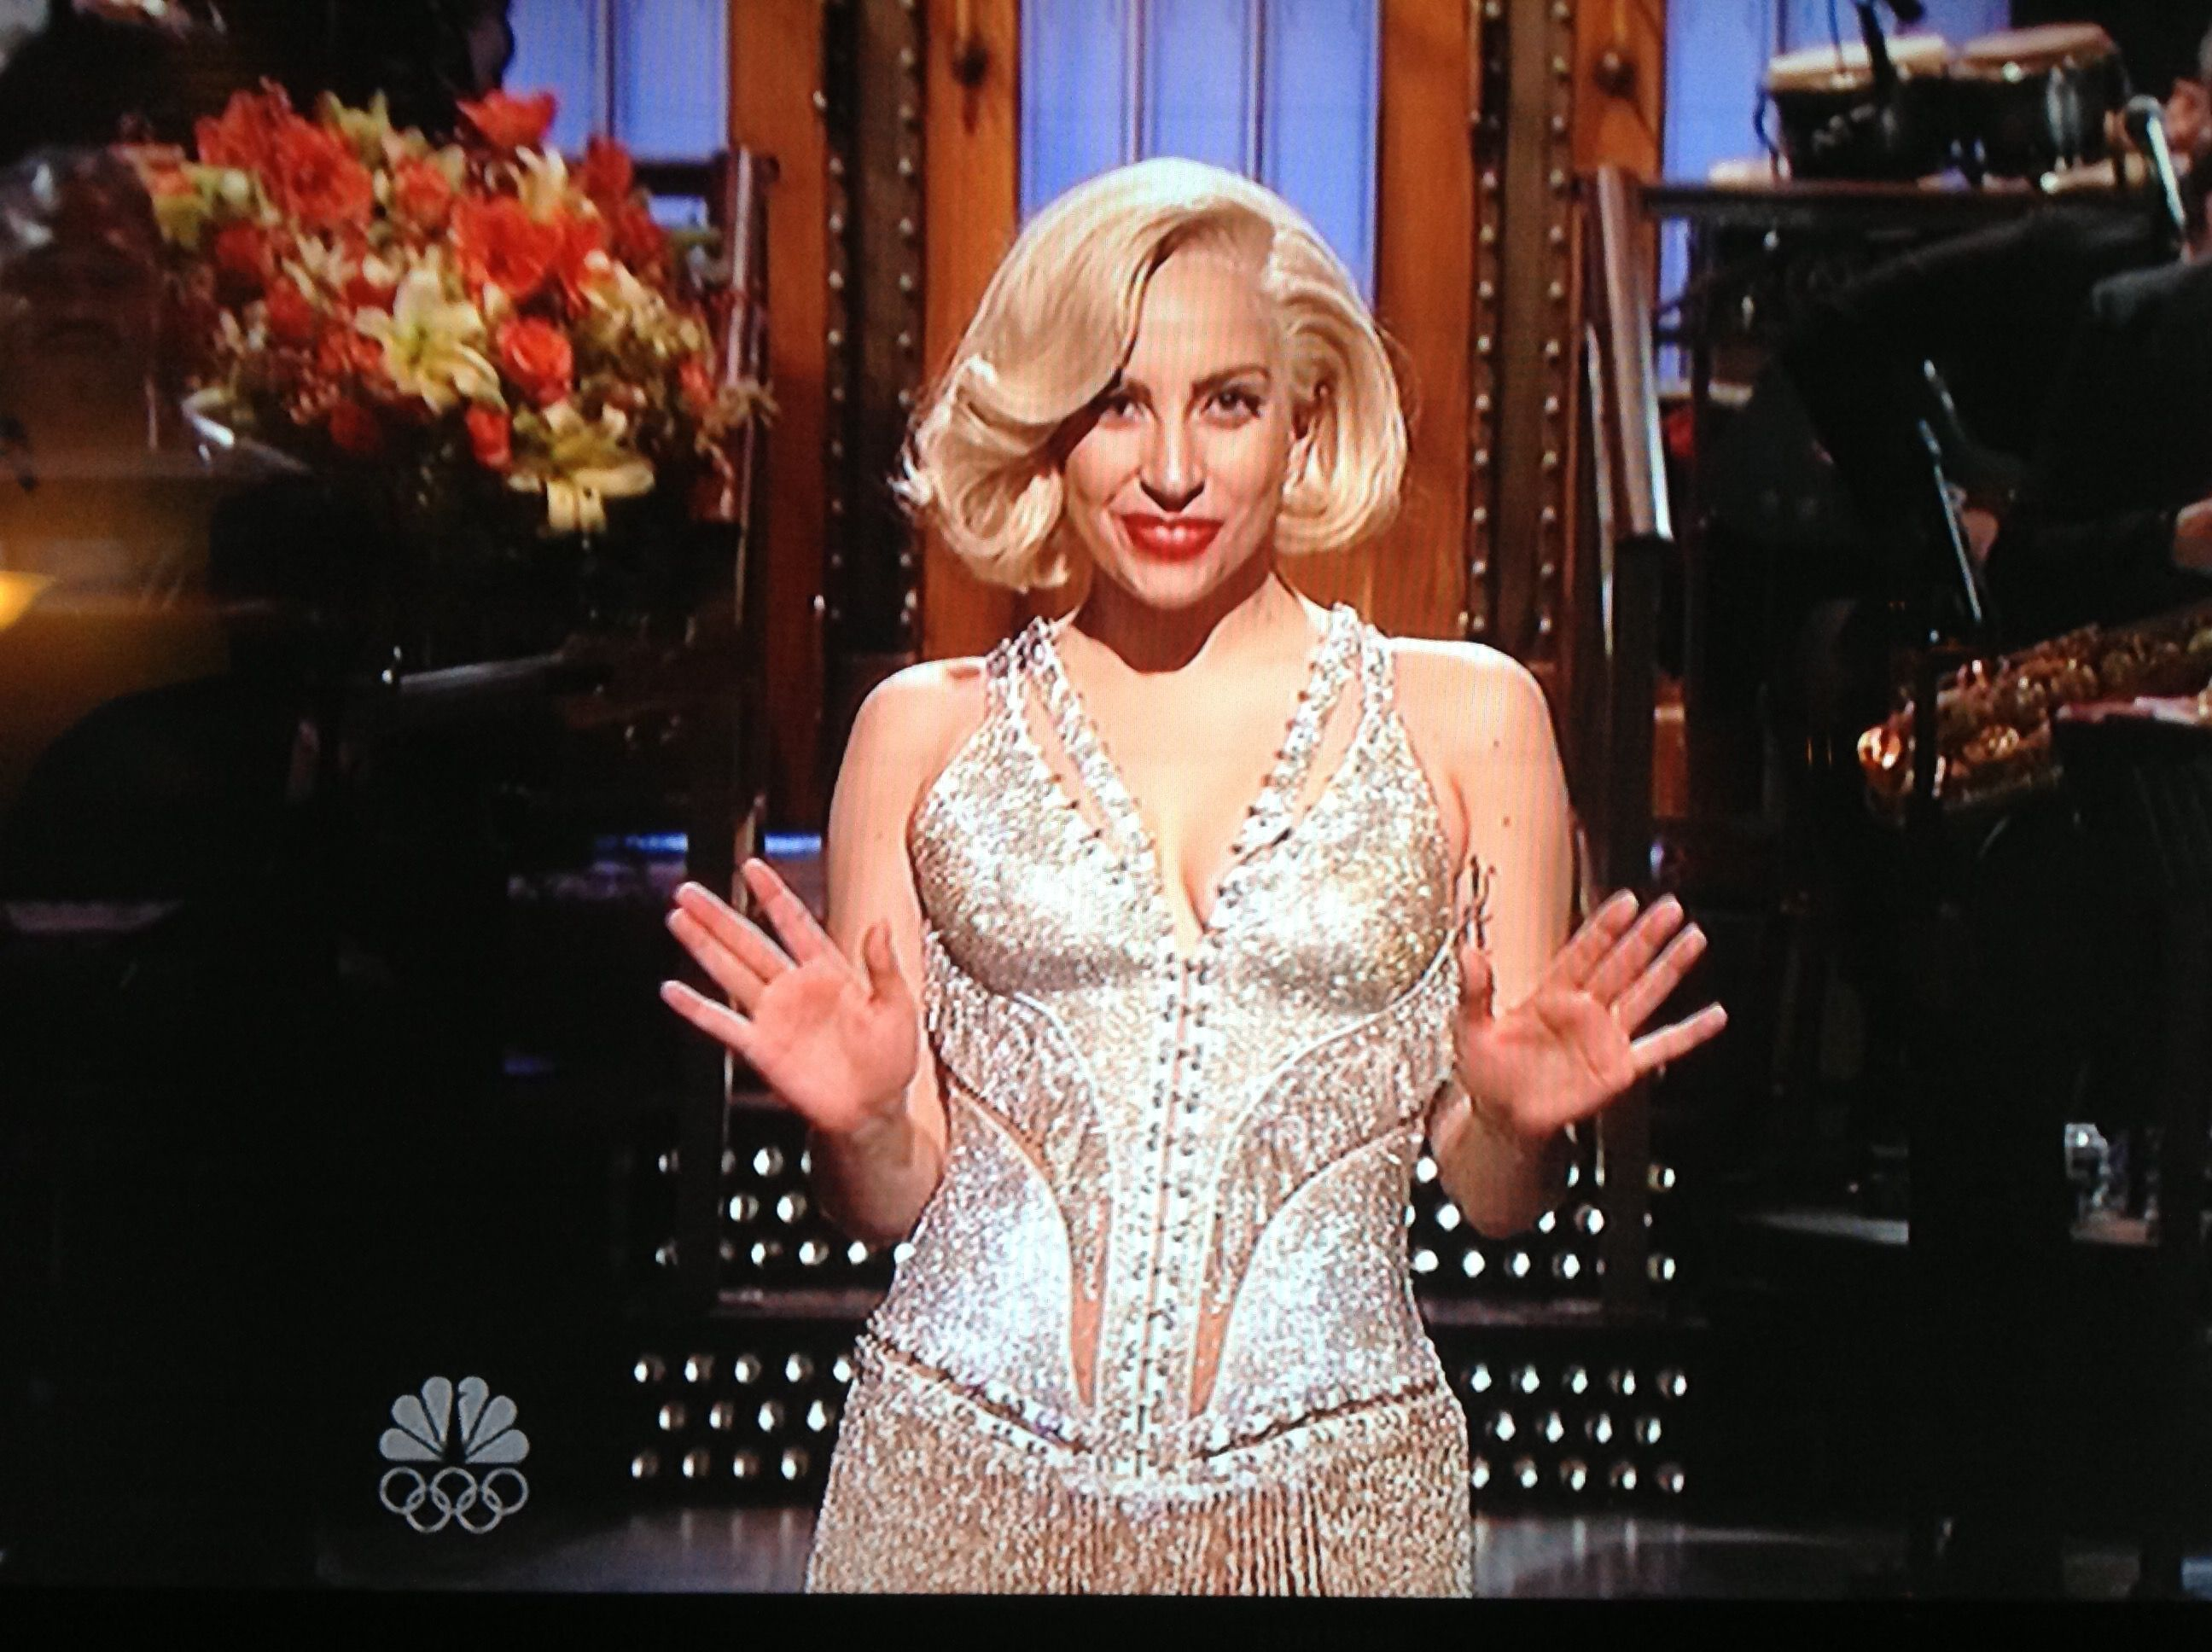 The 25+ best Snl guest ideas on Pinterest | Snl, Snl time and Snl ...